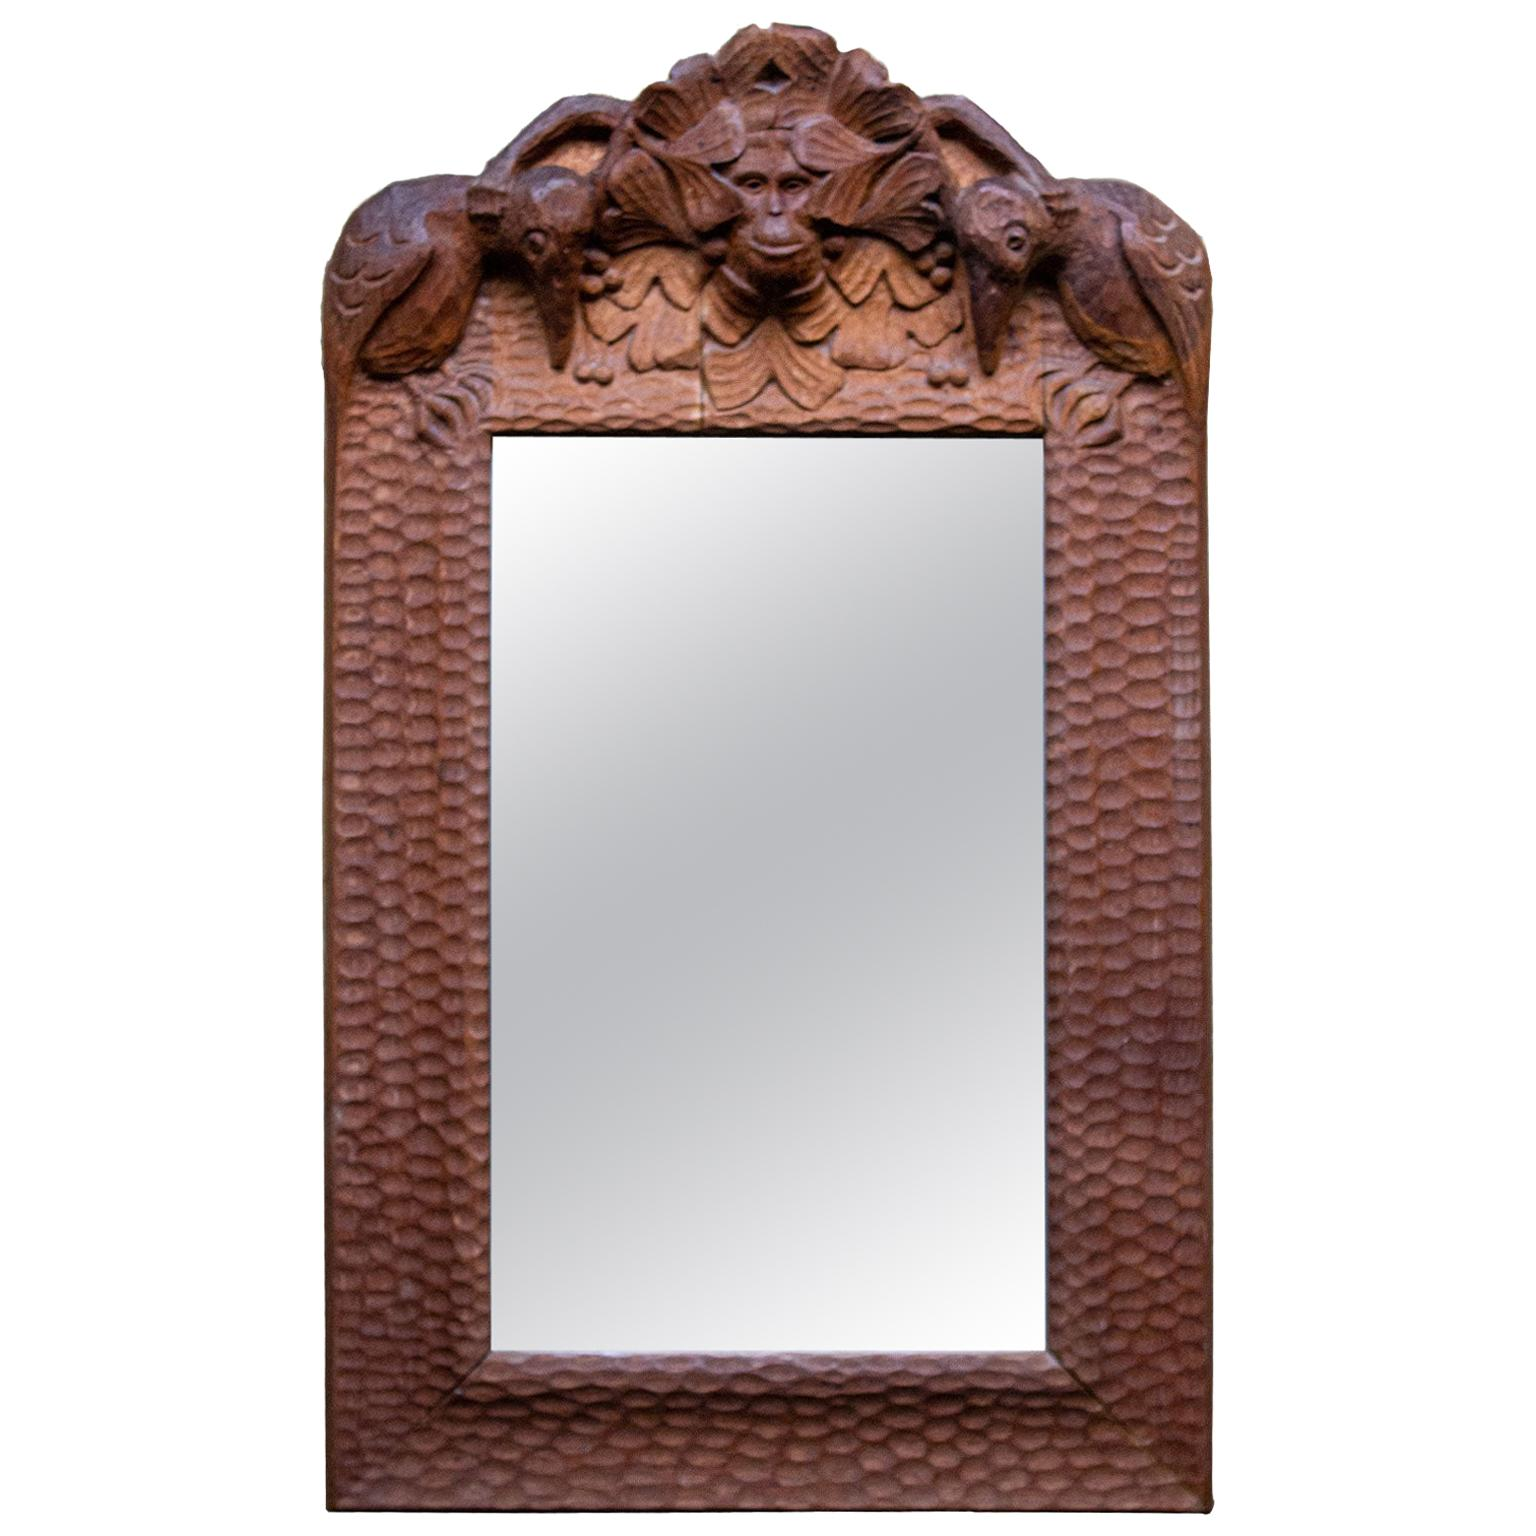 Swedish Arts & Crafts Hand Carved Oak Mirror with Monkey and Birds